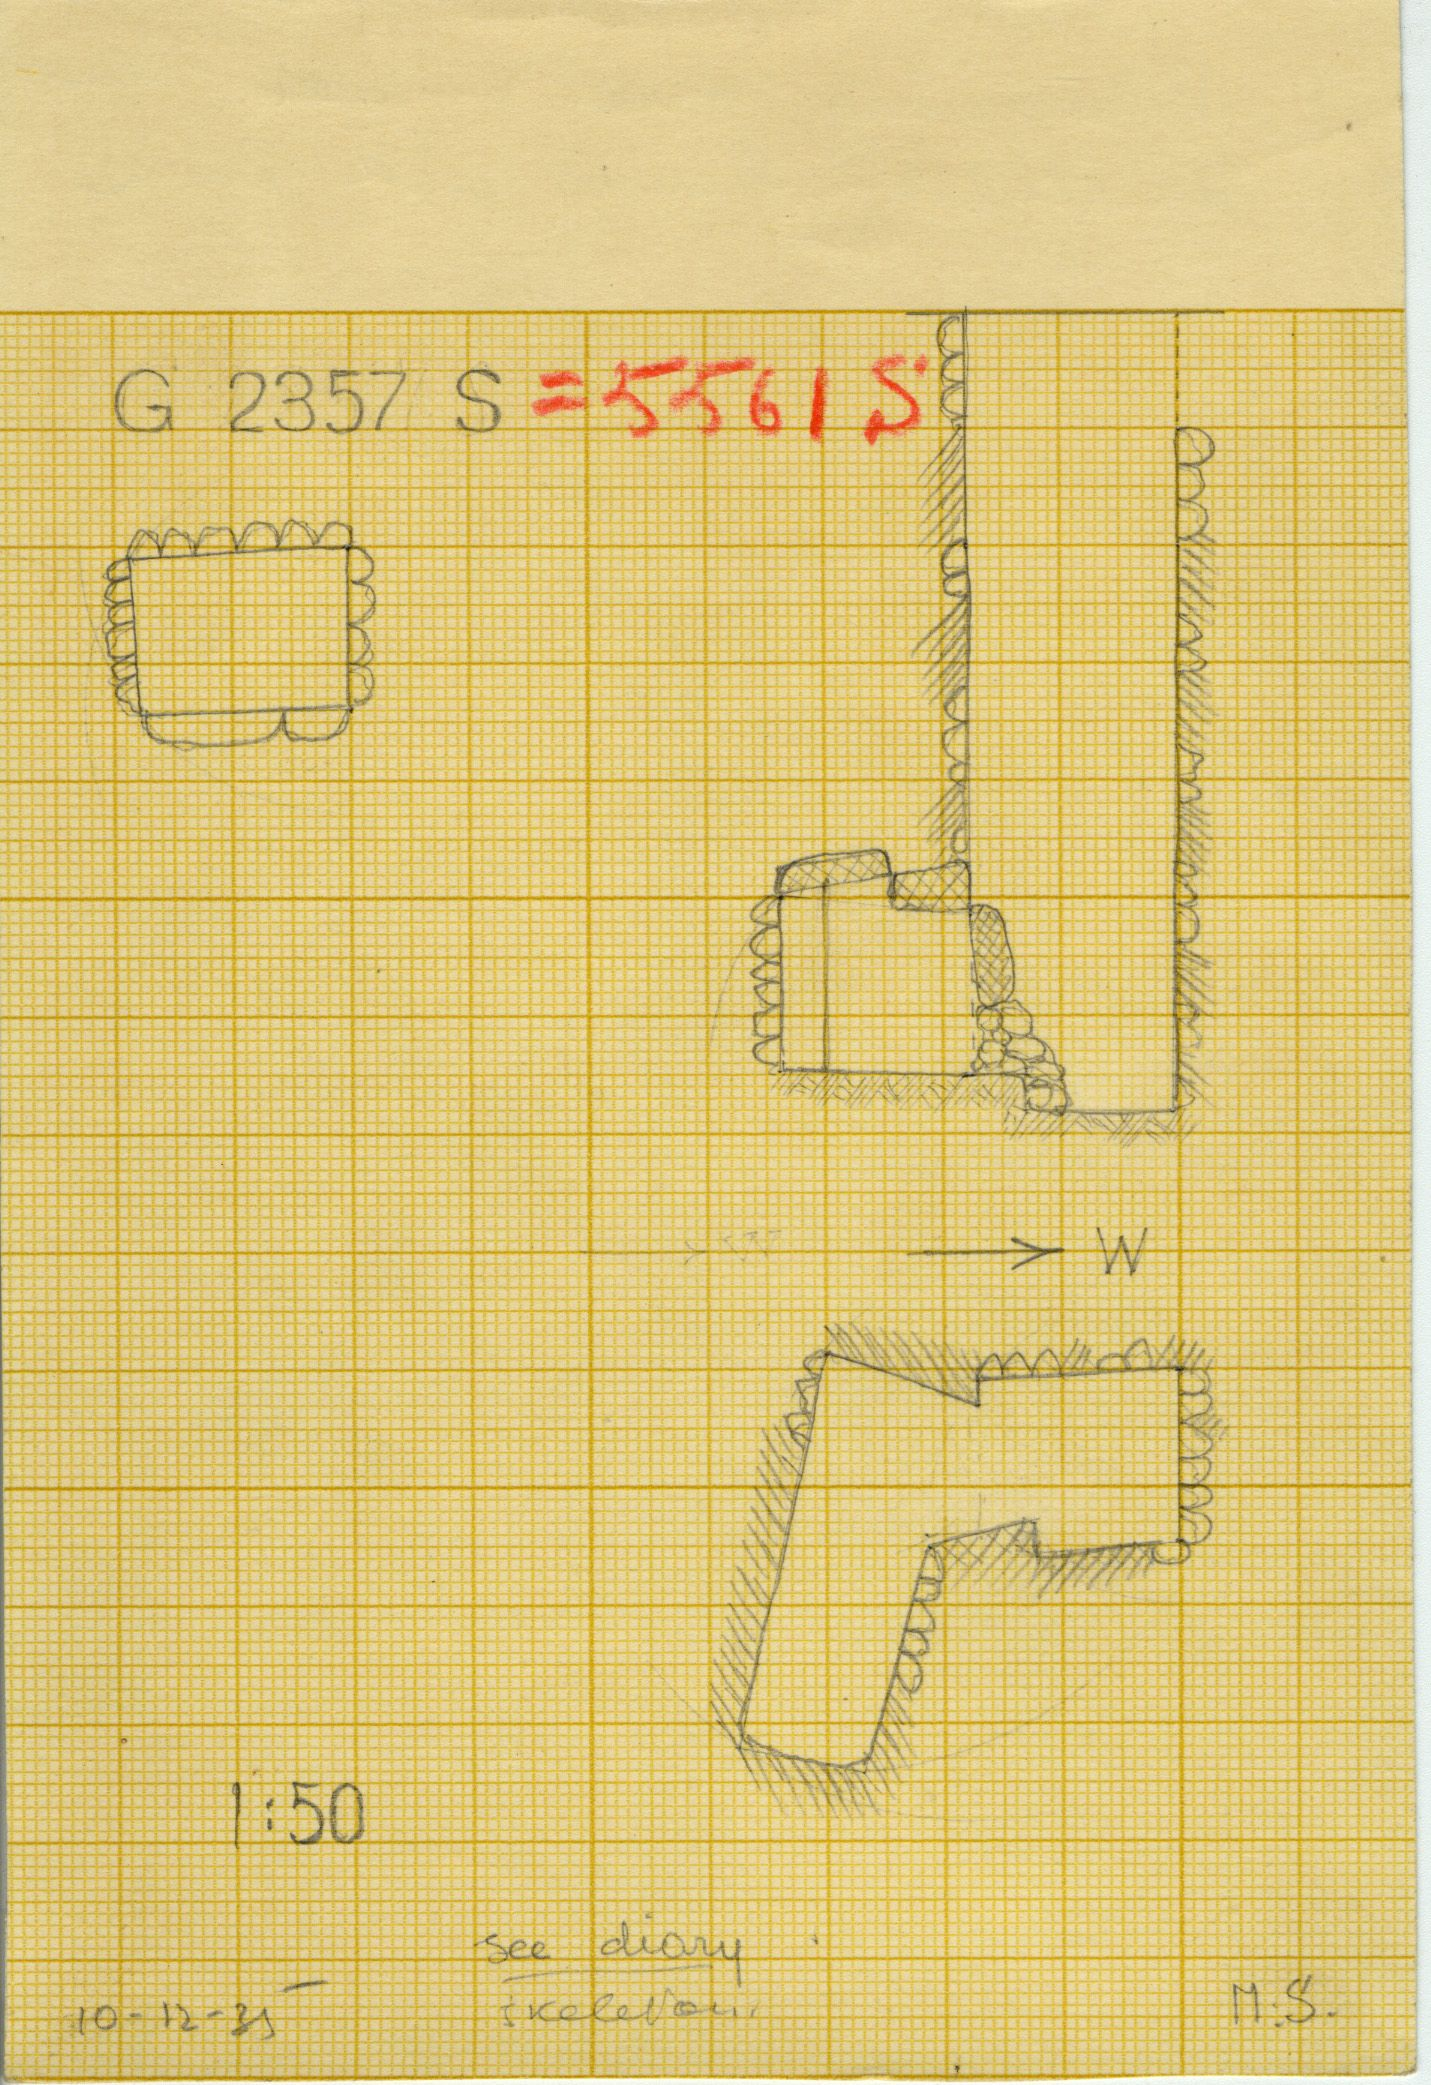 Maps and plans: G 2357 S = G 5561, Shaft S